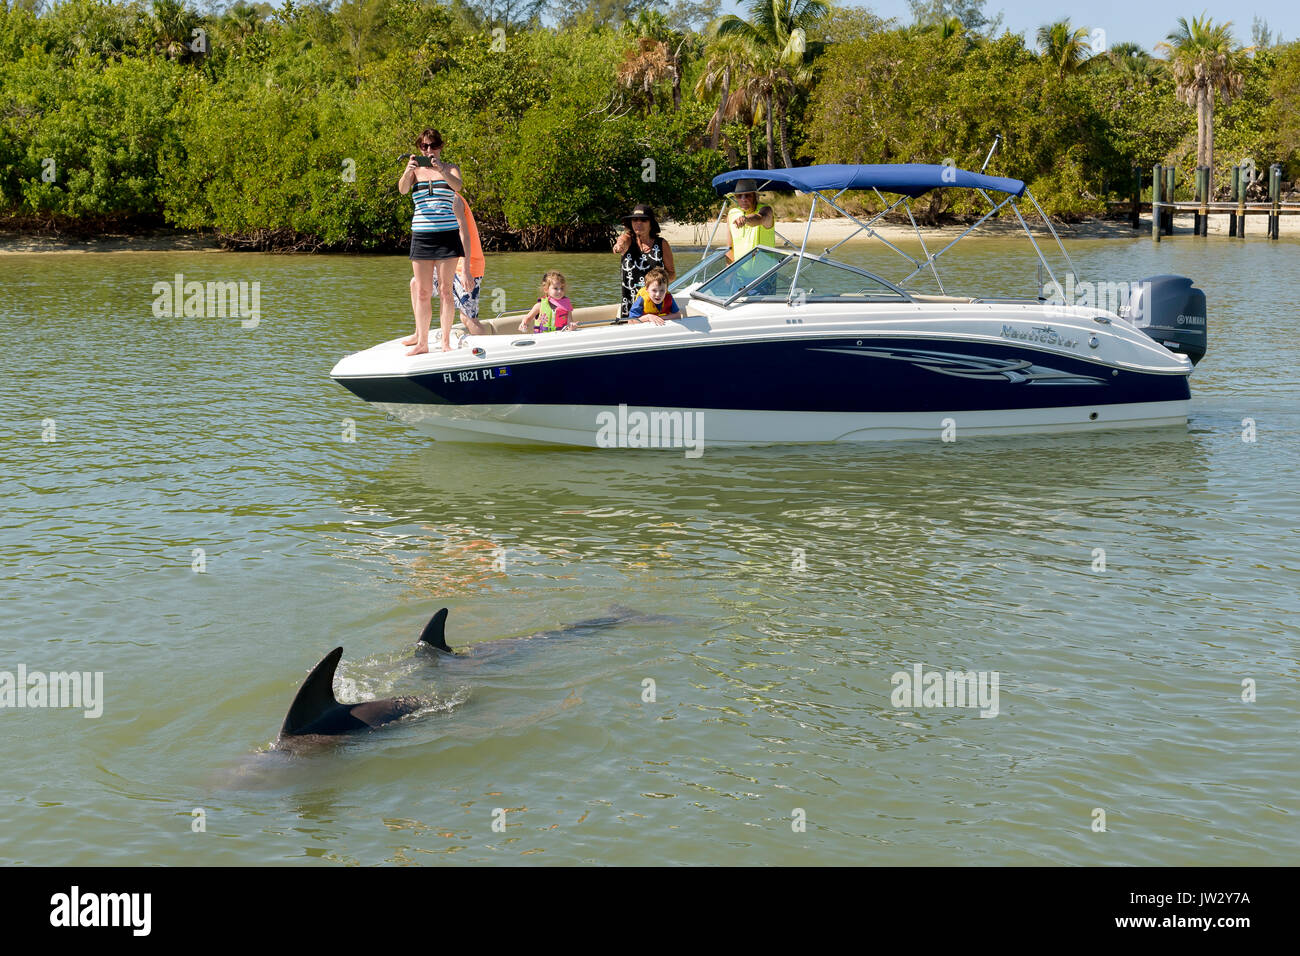 Tourists on boat watching bottlenose dolphins off Keeywaydin Island, Florida, USA - Stock Image